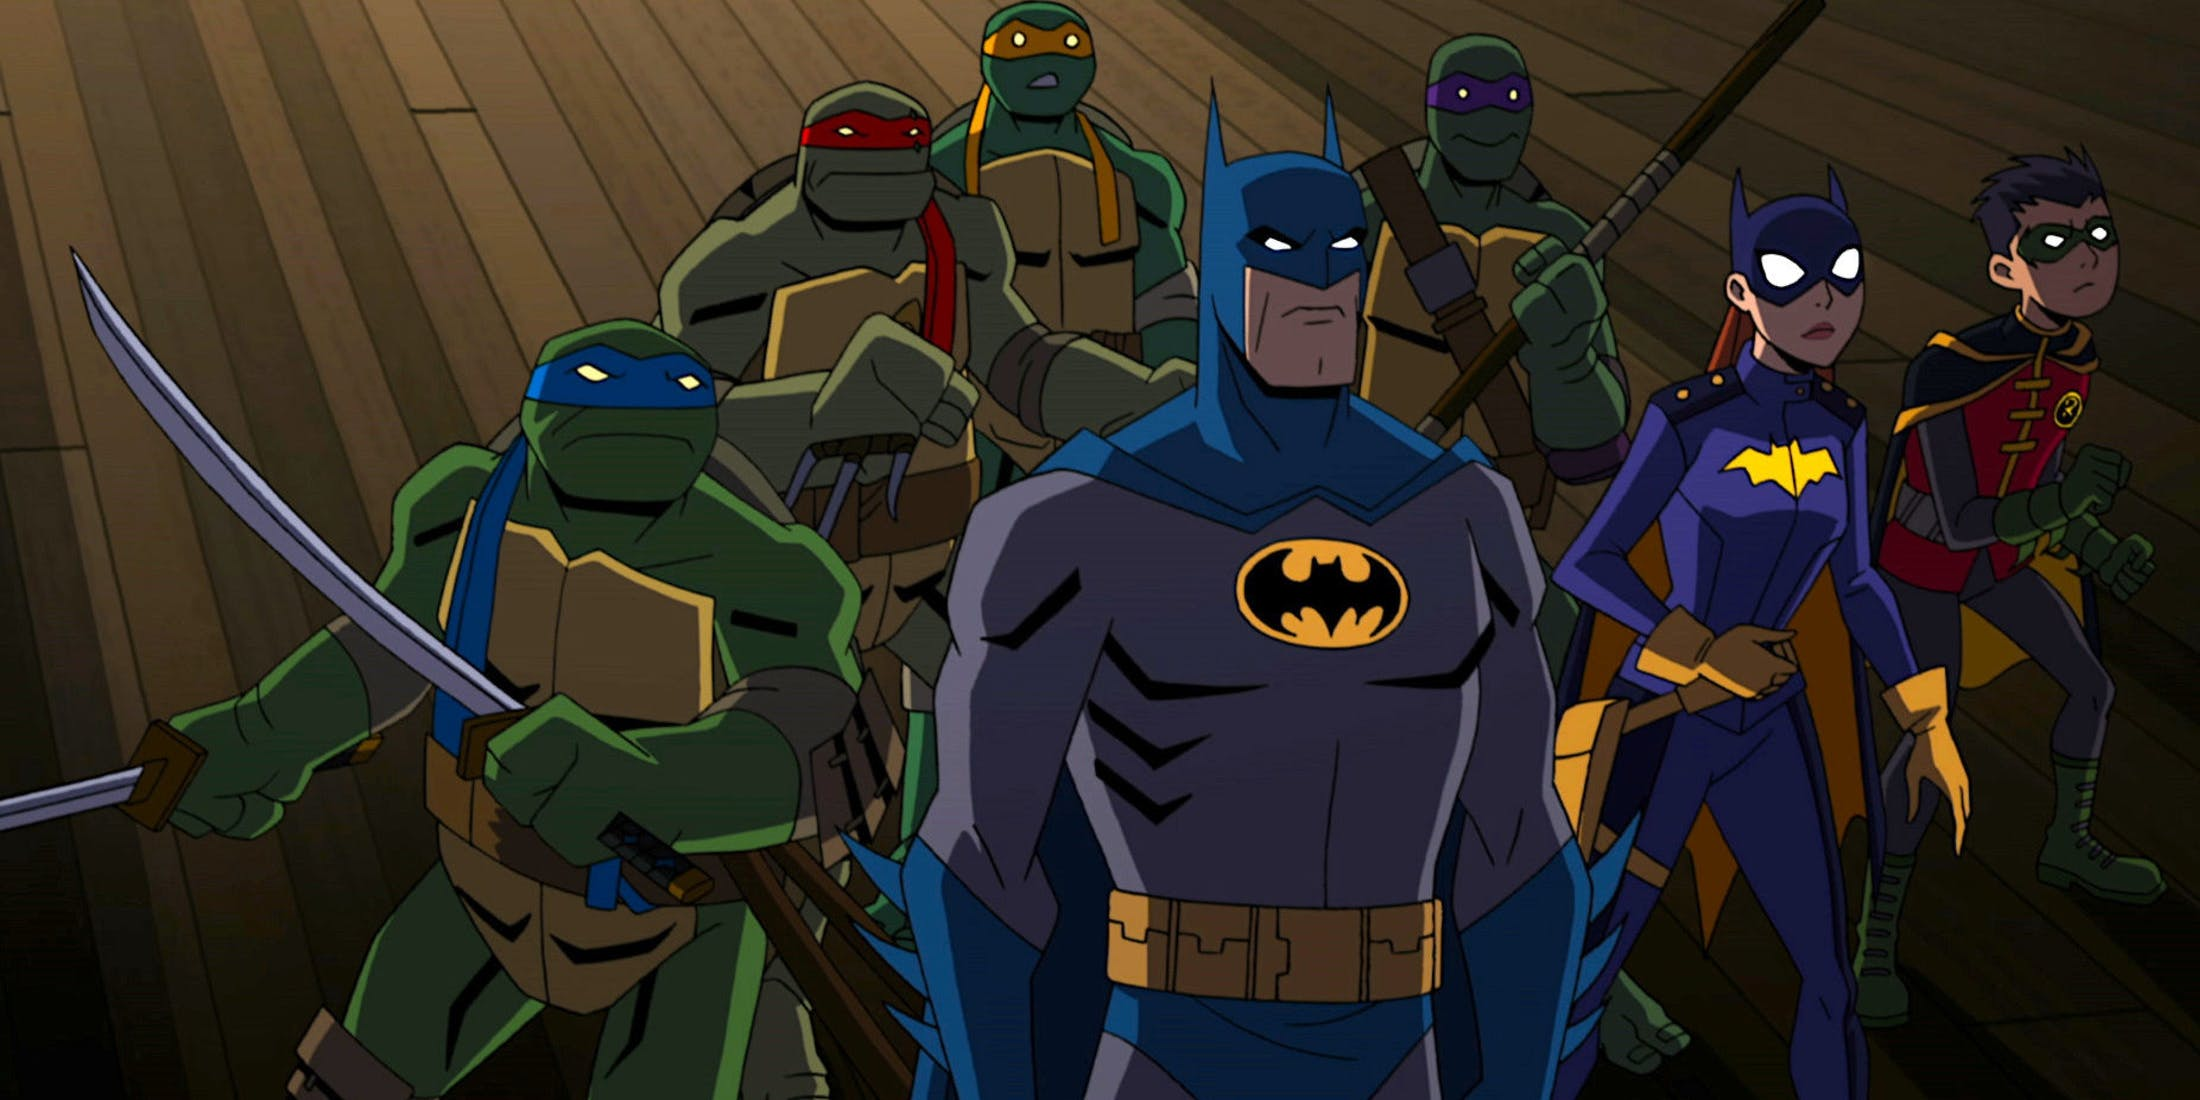 Batman-Vs-Teenage-Mutant-Ninja-Turtles-Animated-Movie